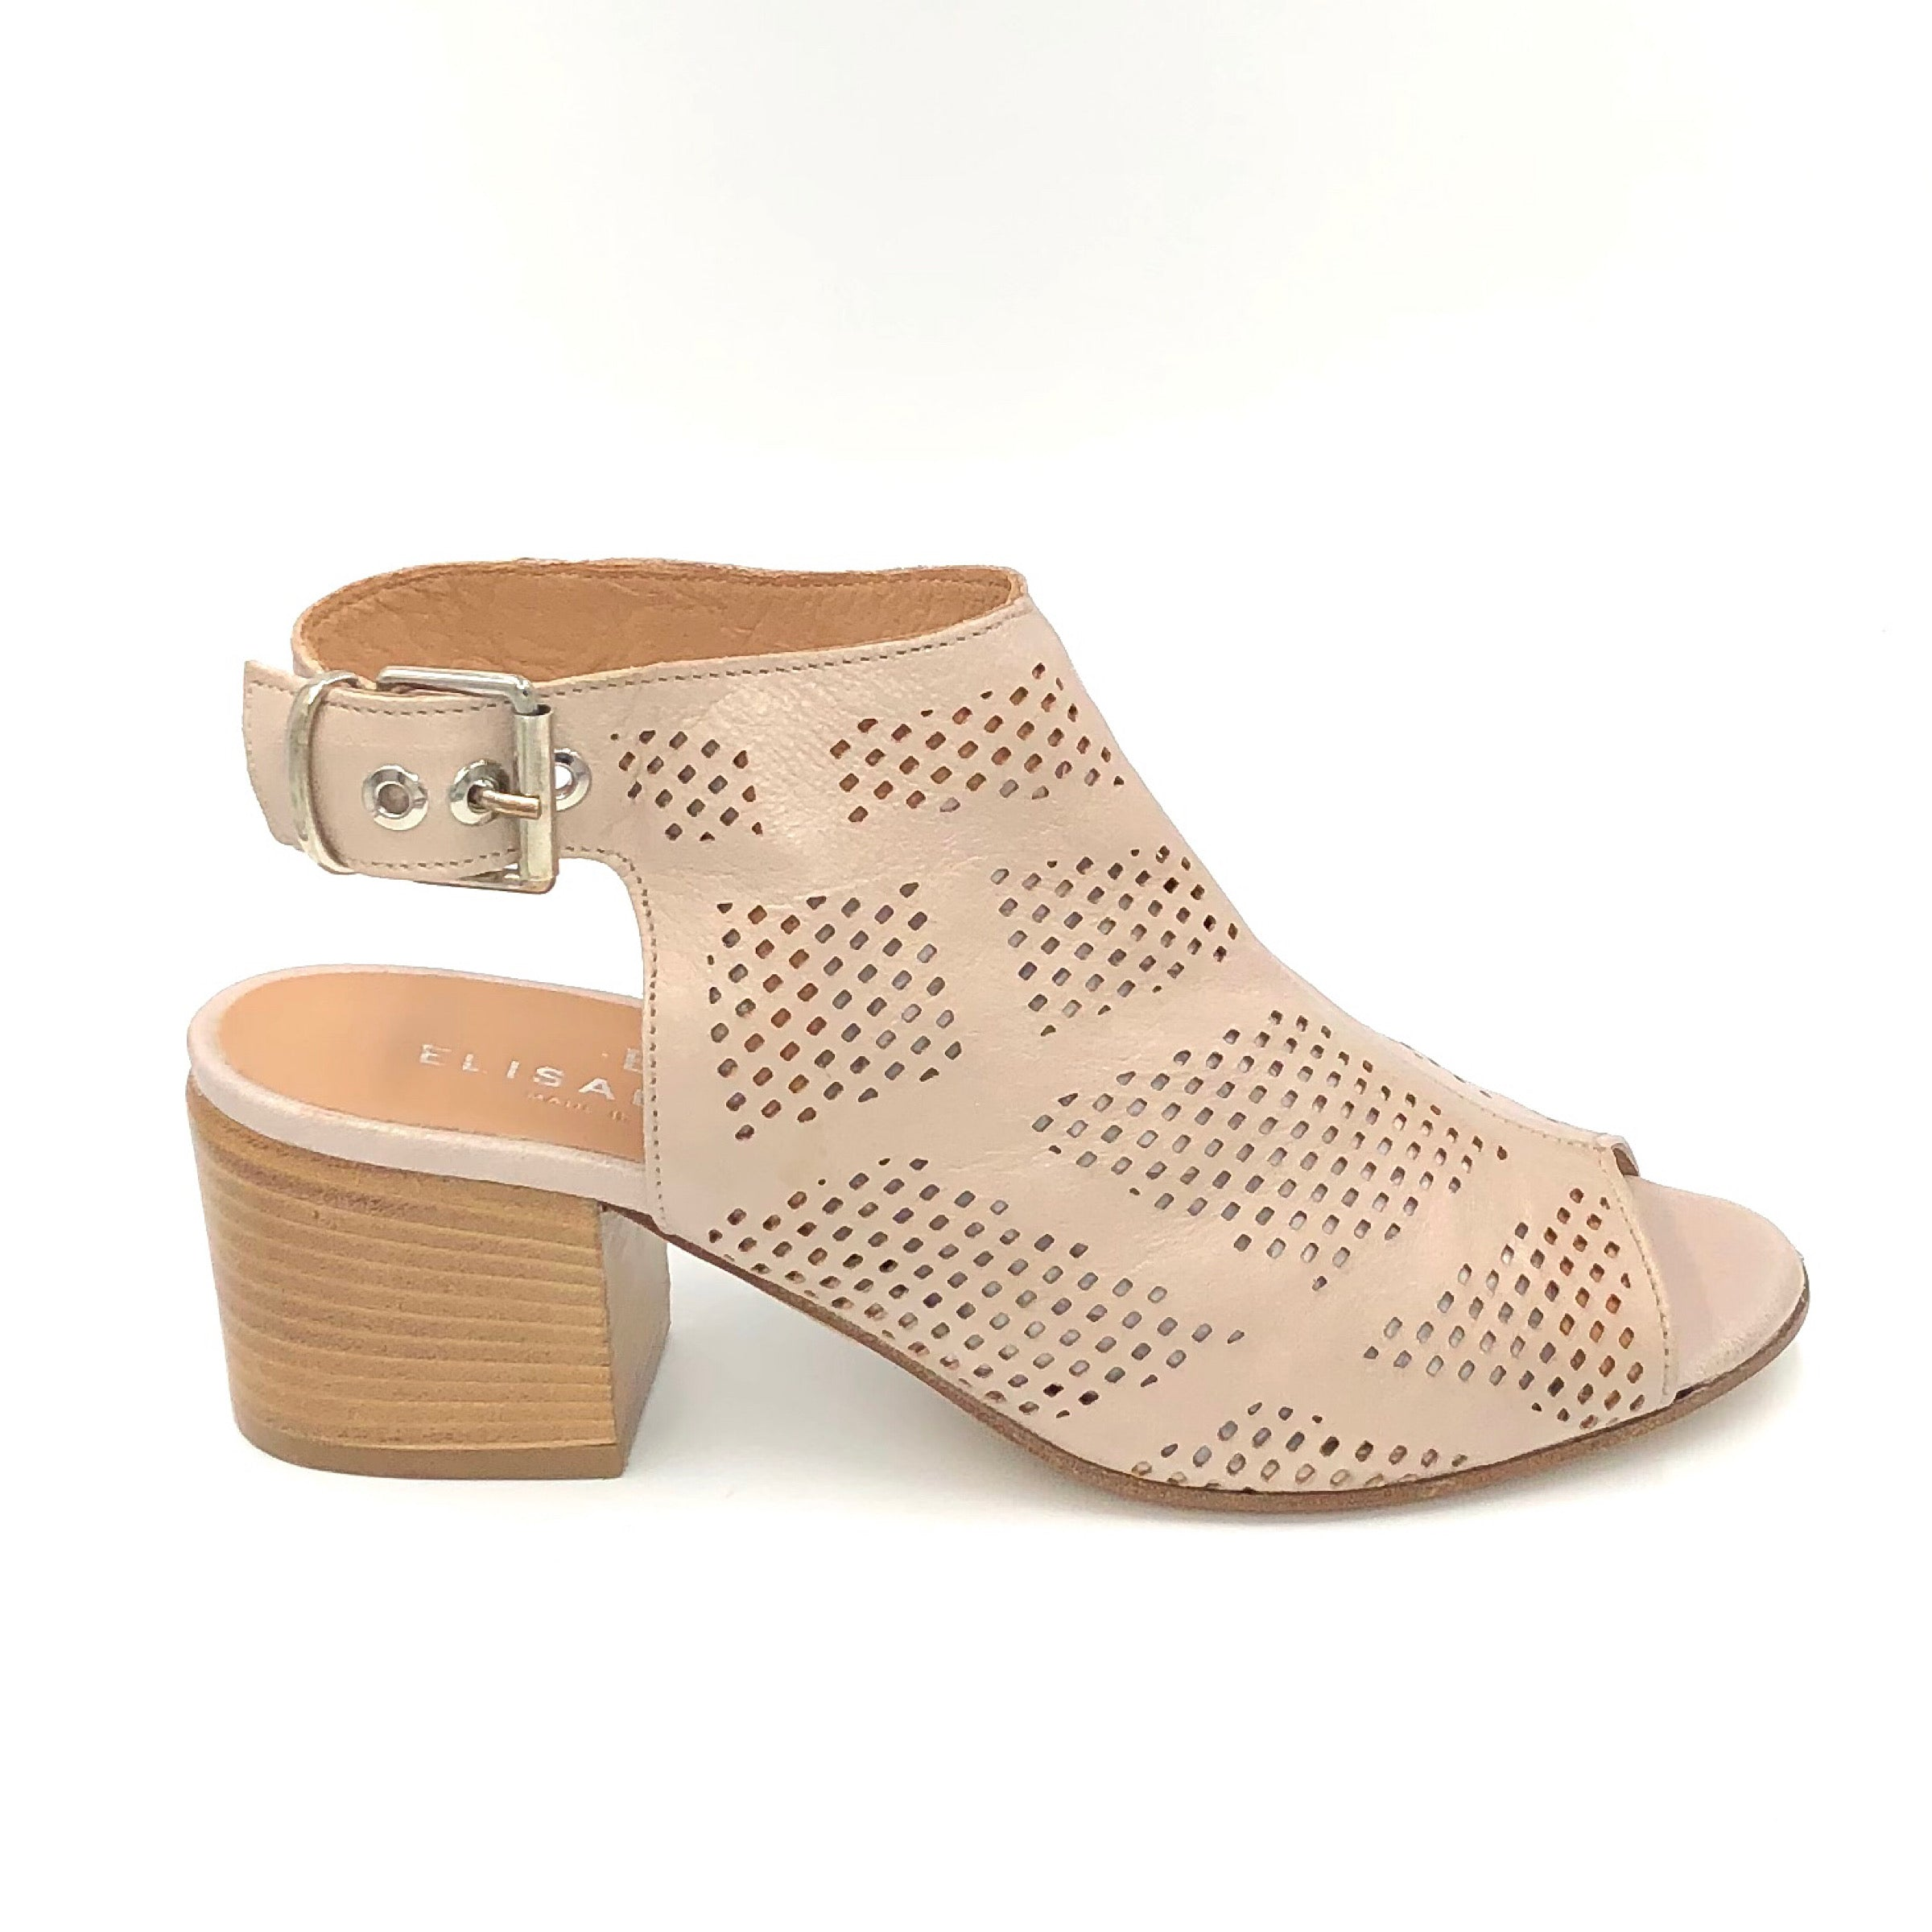 The Laser Cut Transitional Sandal in Perla